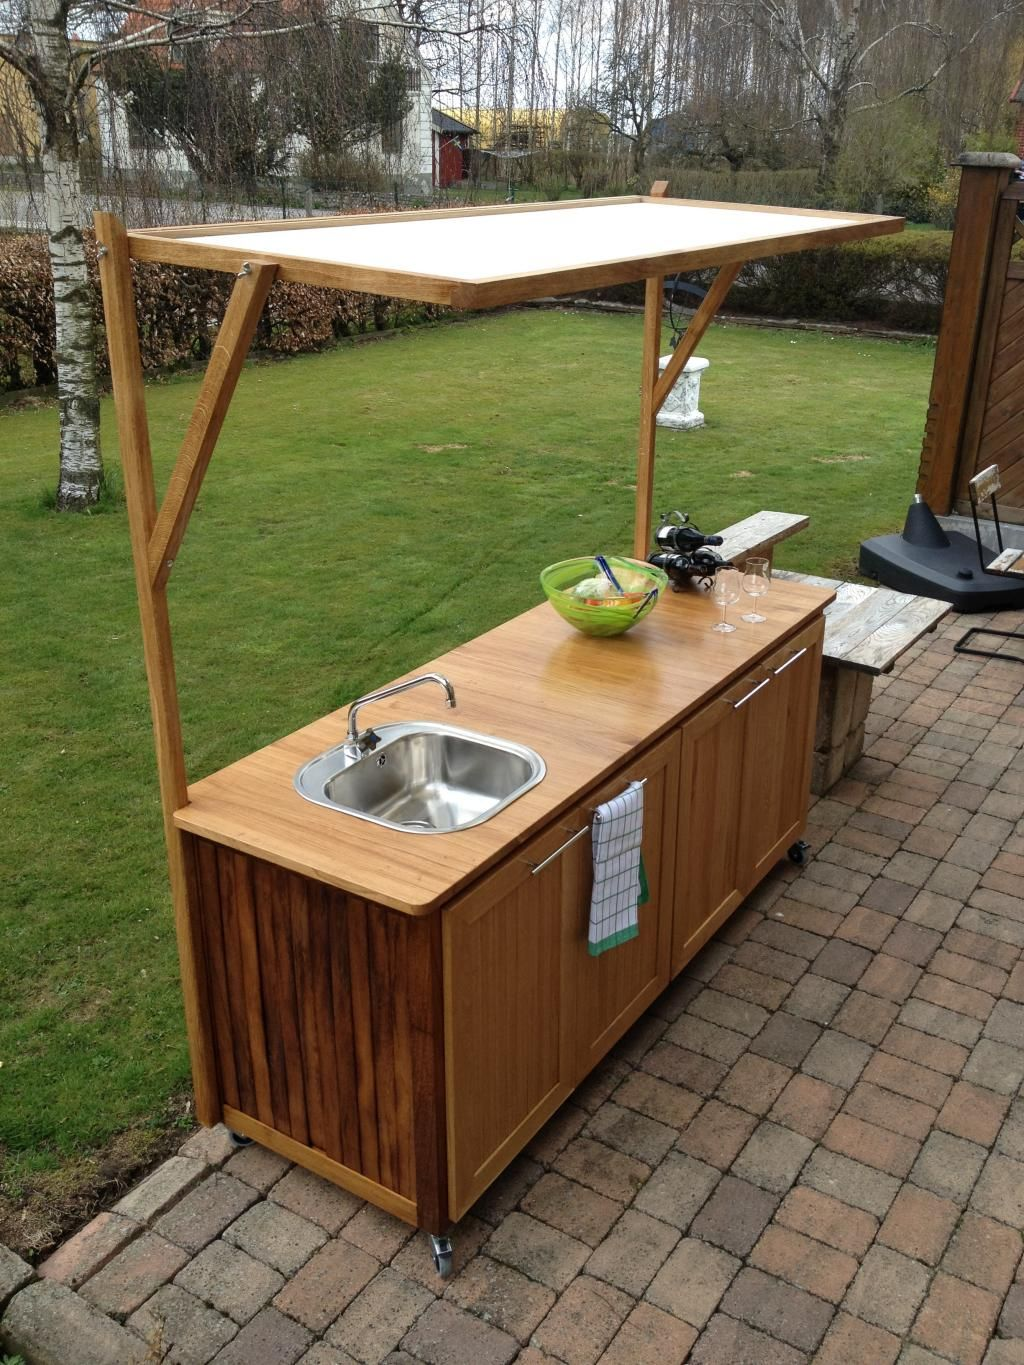 Outdoor Kitchen Sink Cabinets With Shades Build Your Own Outdoor Kitchen Plans Home Design Build Outdoor Kitchen Simple Outdoor Kitchen Outdoor Kitchen Plans